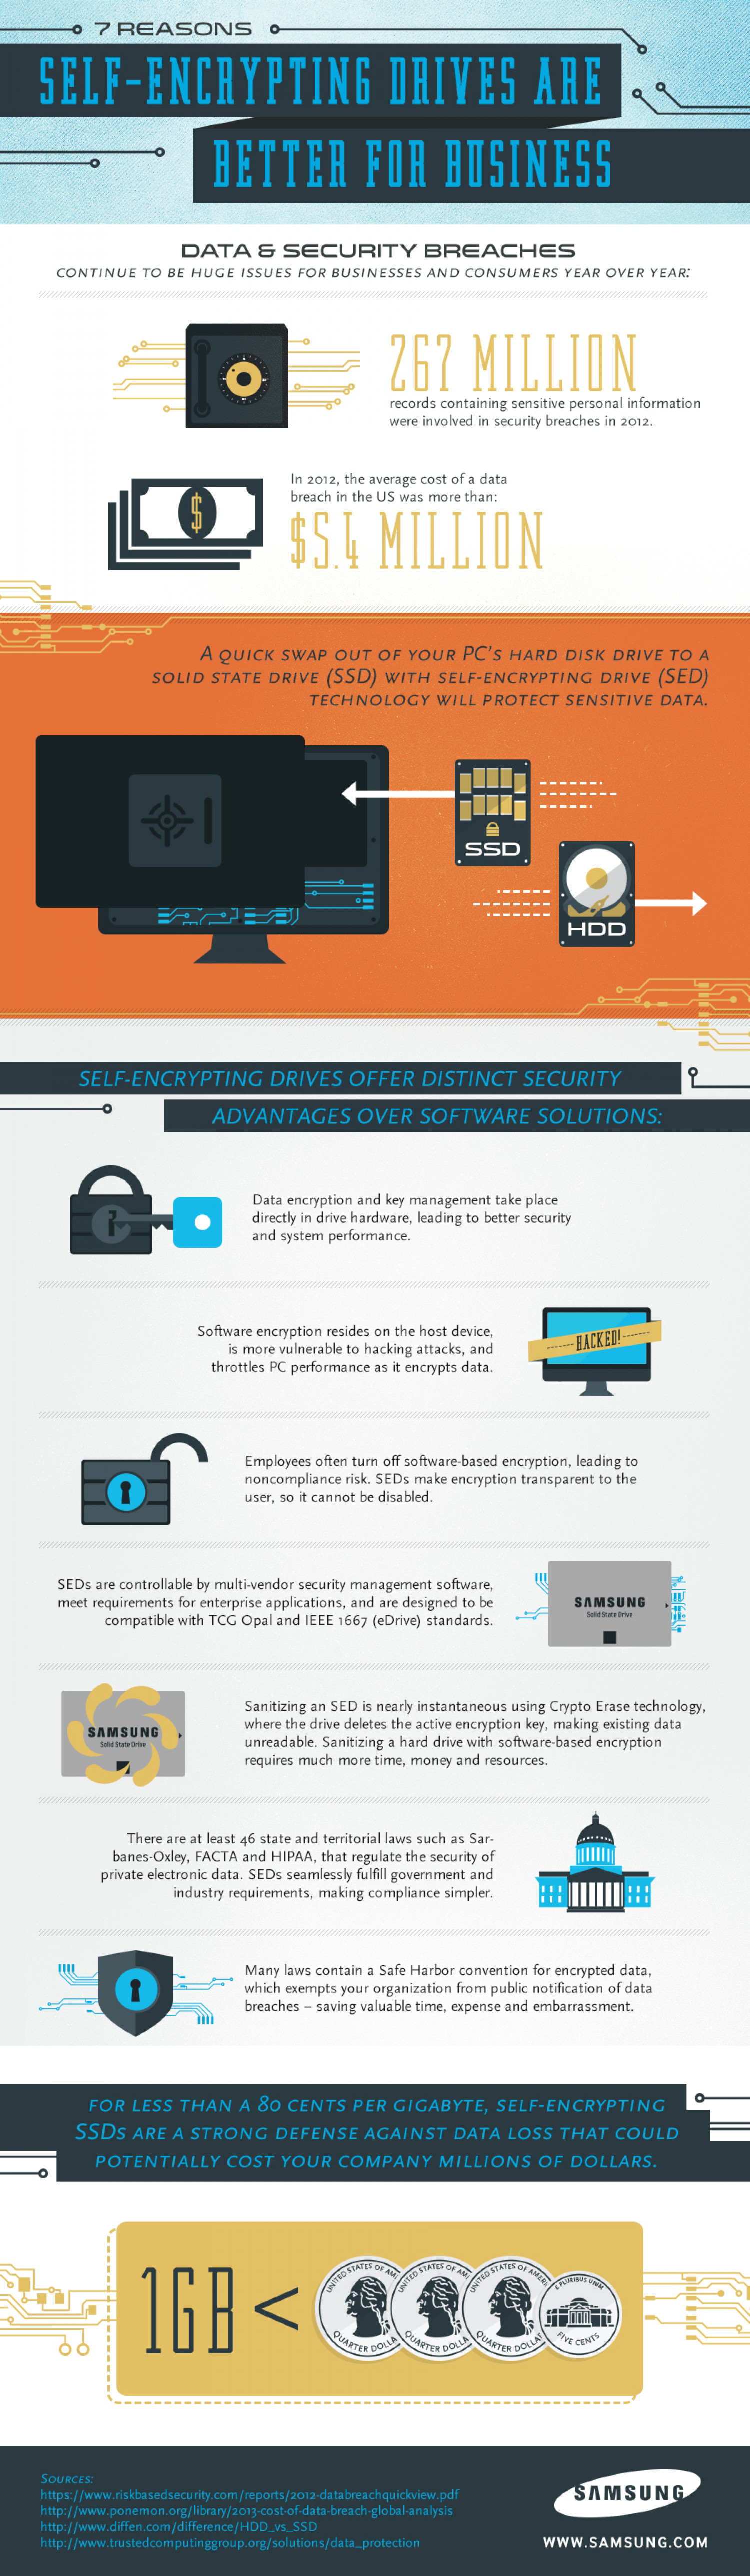 7 Reasons Self-Encrypting Drives are Better for Business Infographic